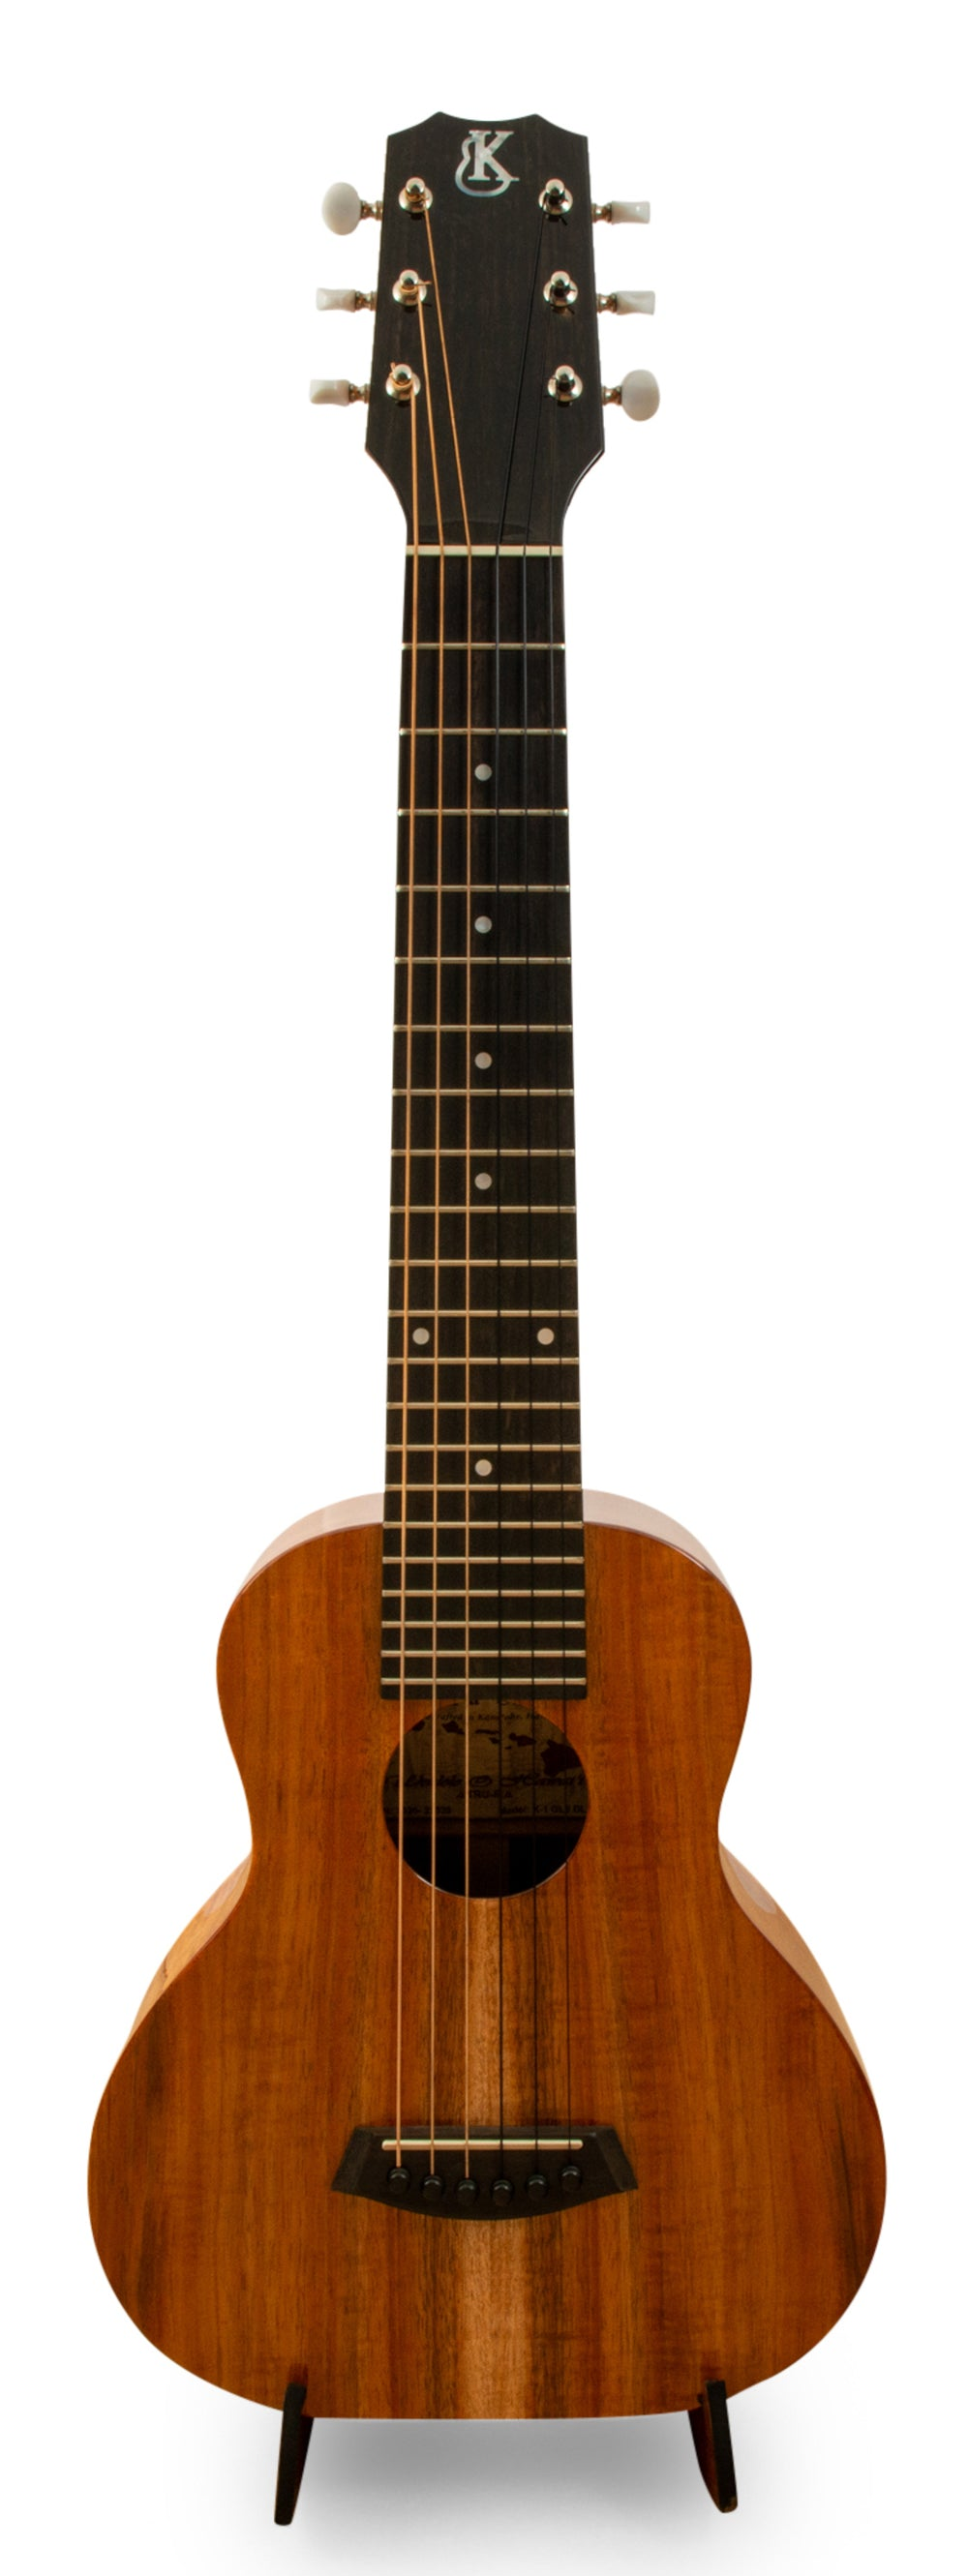 "Kanile'a GL6 Solid Deluxe Koa 6 String Guitarlele ""Slinky"" Made in Hawaii"